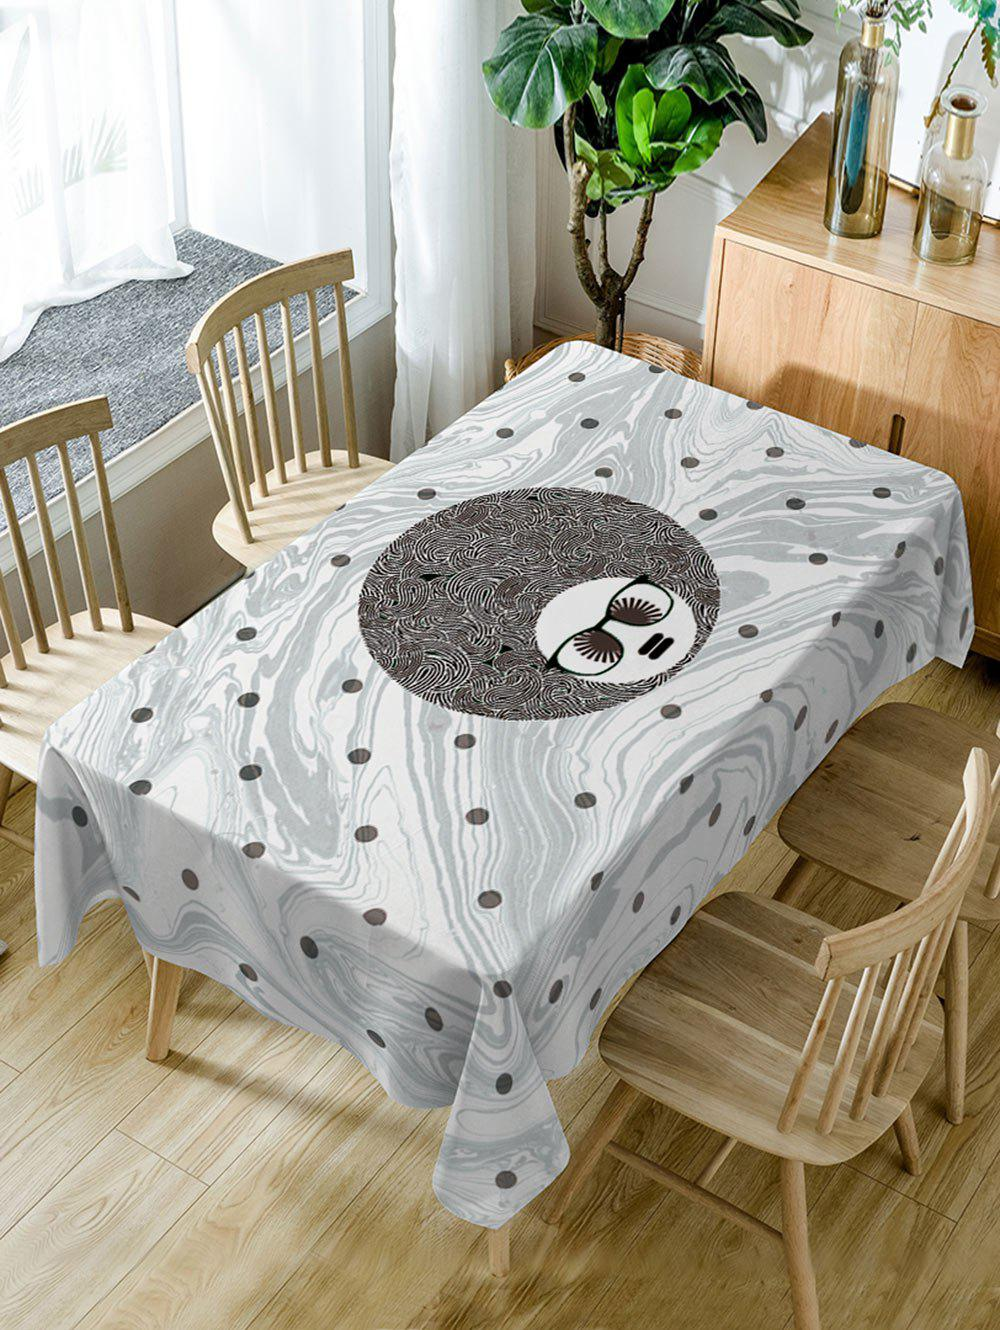 Best Big Head Man with Glasses Print Table Cloth